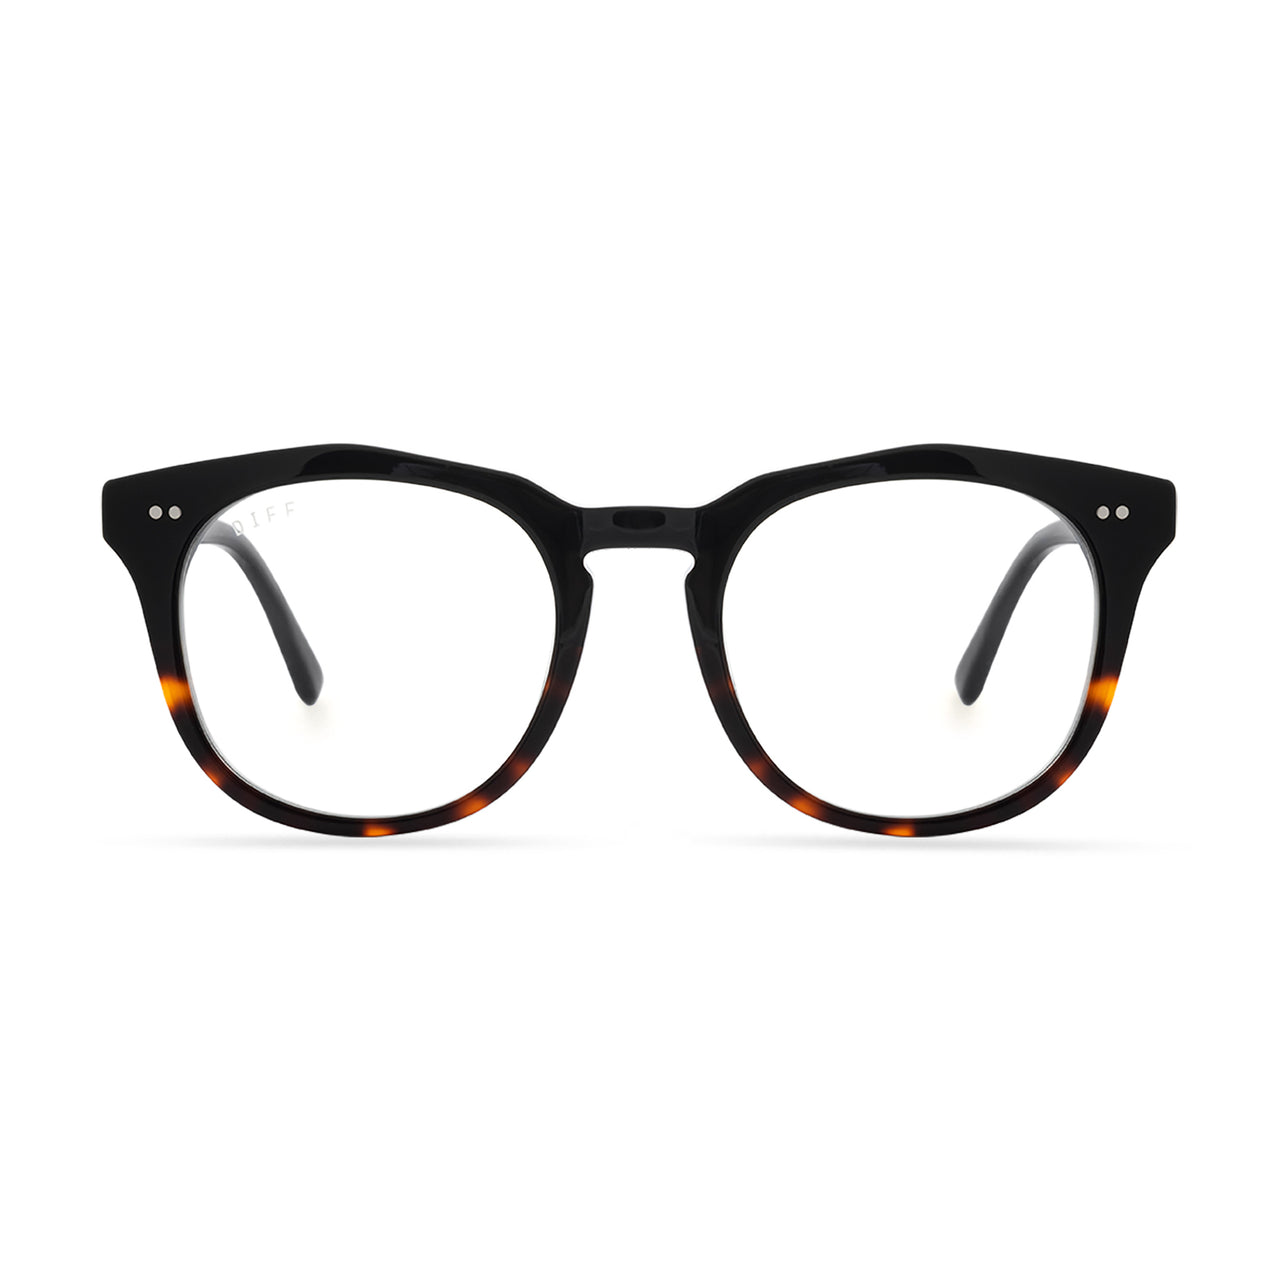 WESTON - BLACK + TORTOISE + CLEAR front